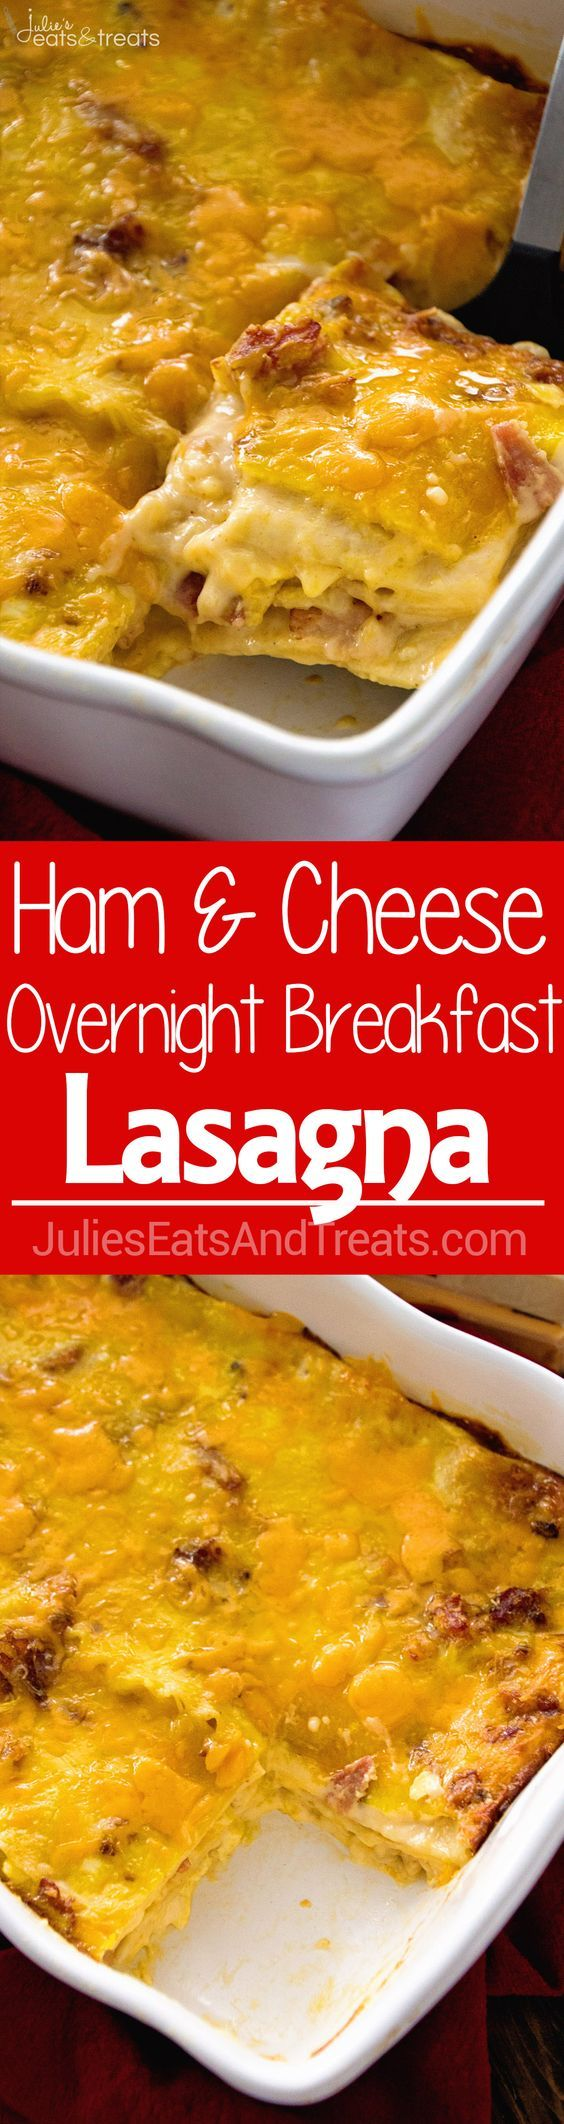 Ham & Cheese Overnight Breakfast Lasagna Recipe ~ Layers of Lasagna Noodles Stuffed with a Delicious Cheese Sauce, Bacon and More Cheese! Prep this the Night Before and Enjoy it for Breakfast or Brunc